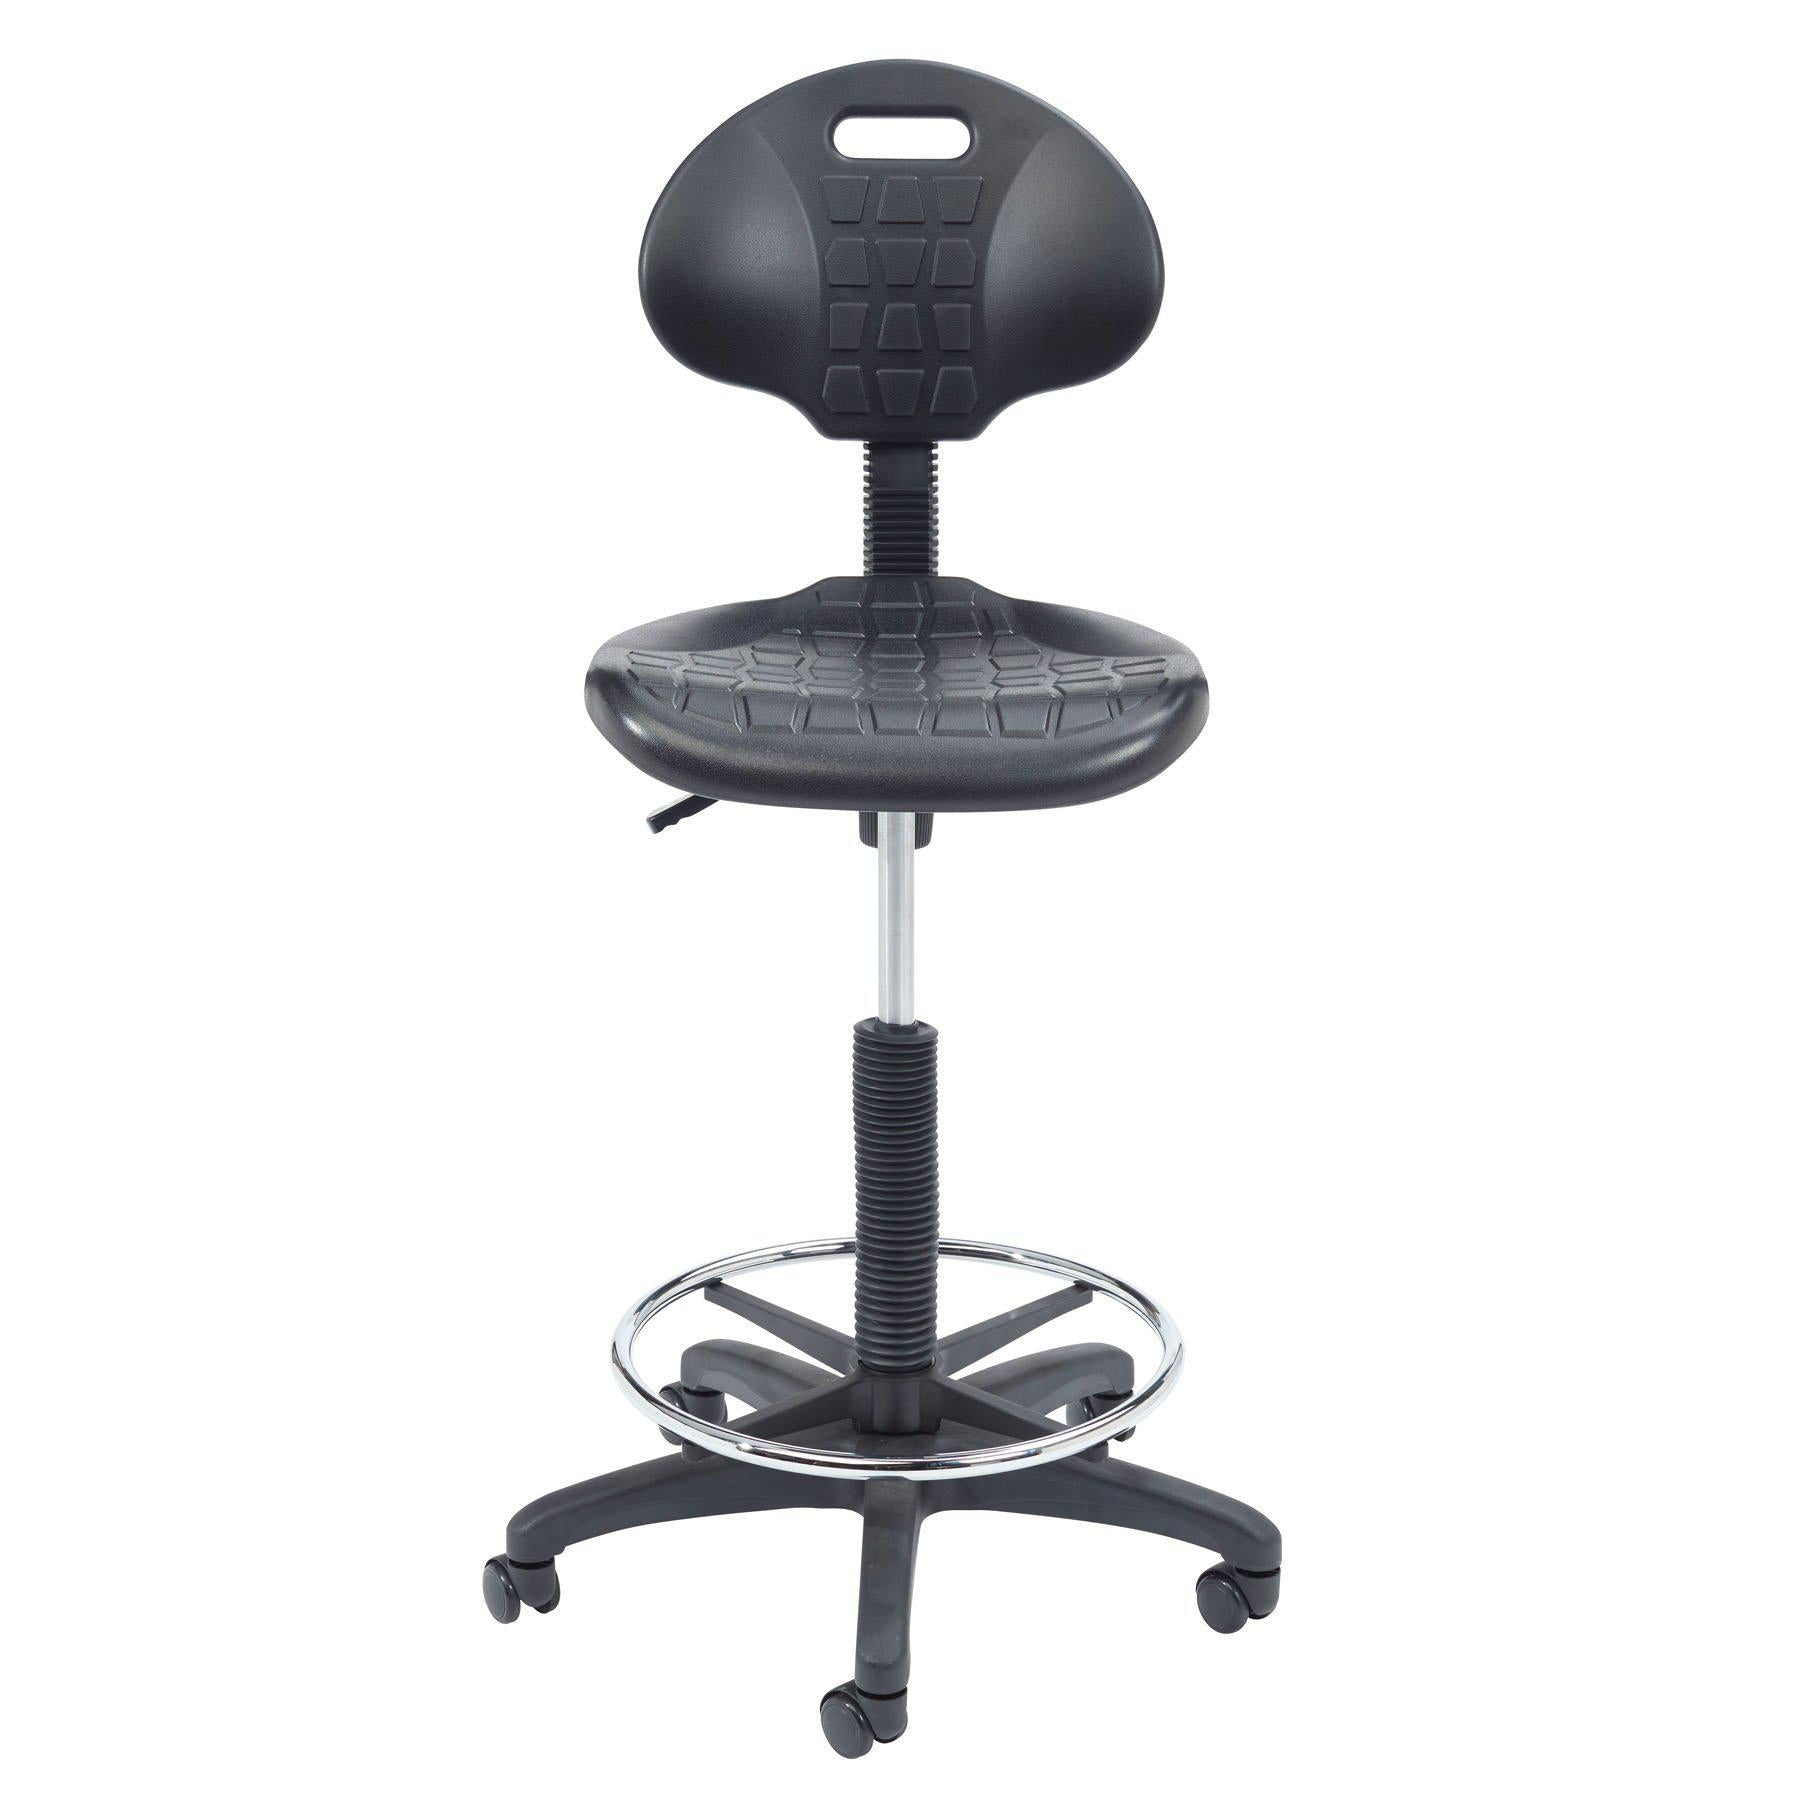 Kangaroo Stool, Polyurethane Seat and Backrest, Black-Stools-